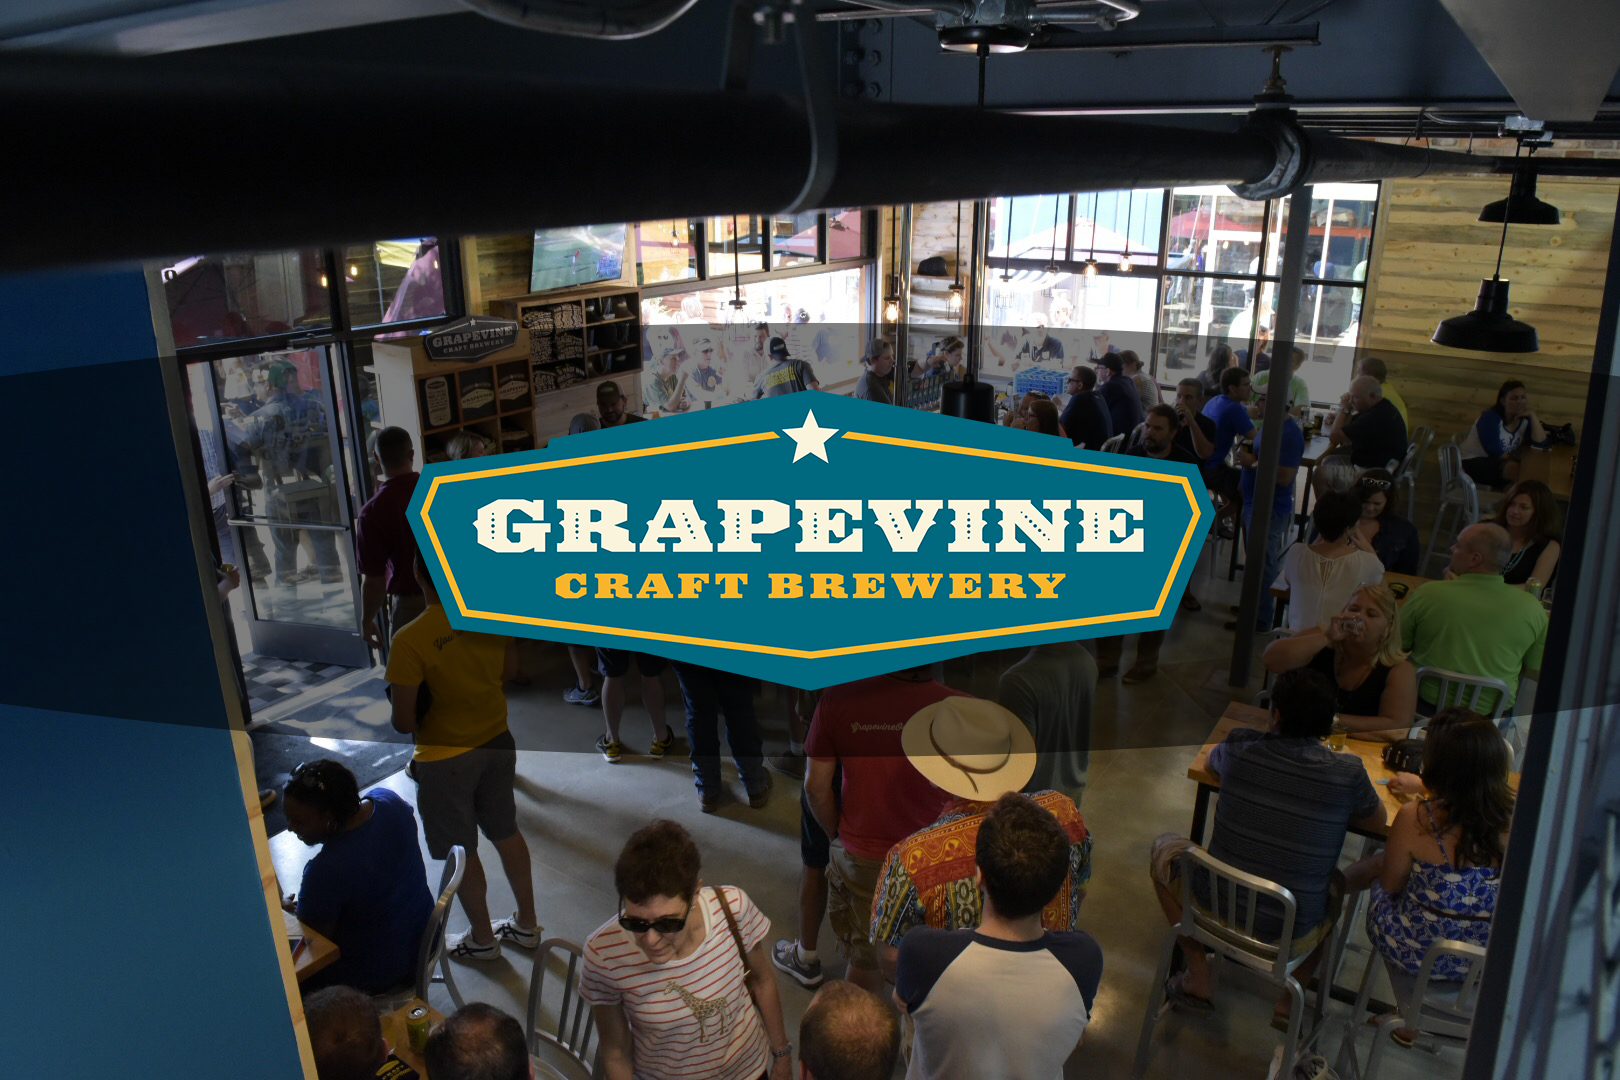 Cowboys Blog - Dallas Cowboys Watching Party, Dec 13 At Grapevine Craft Brewery 4